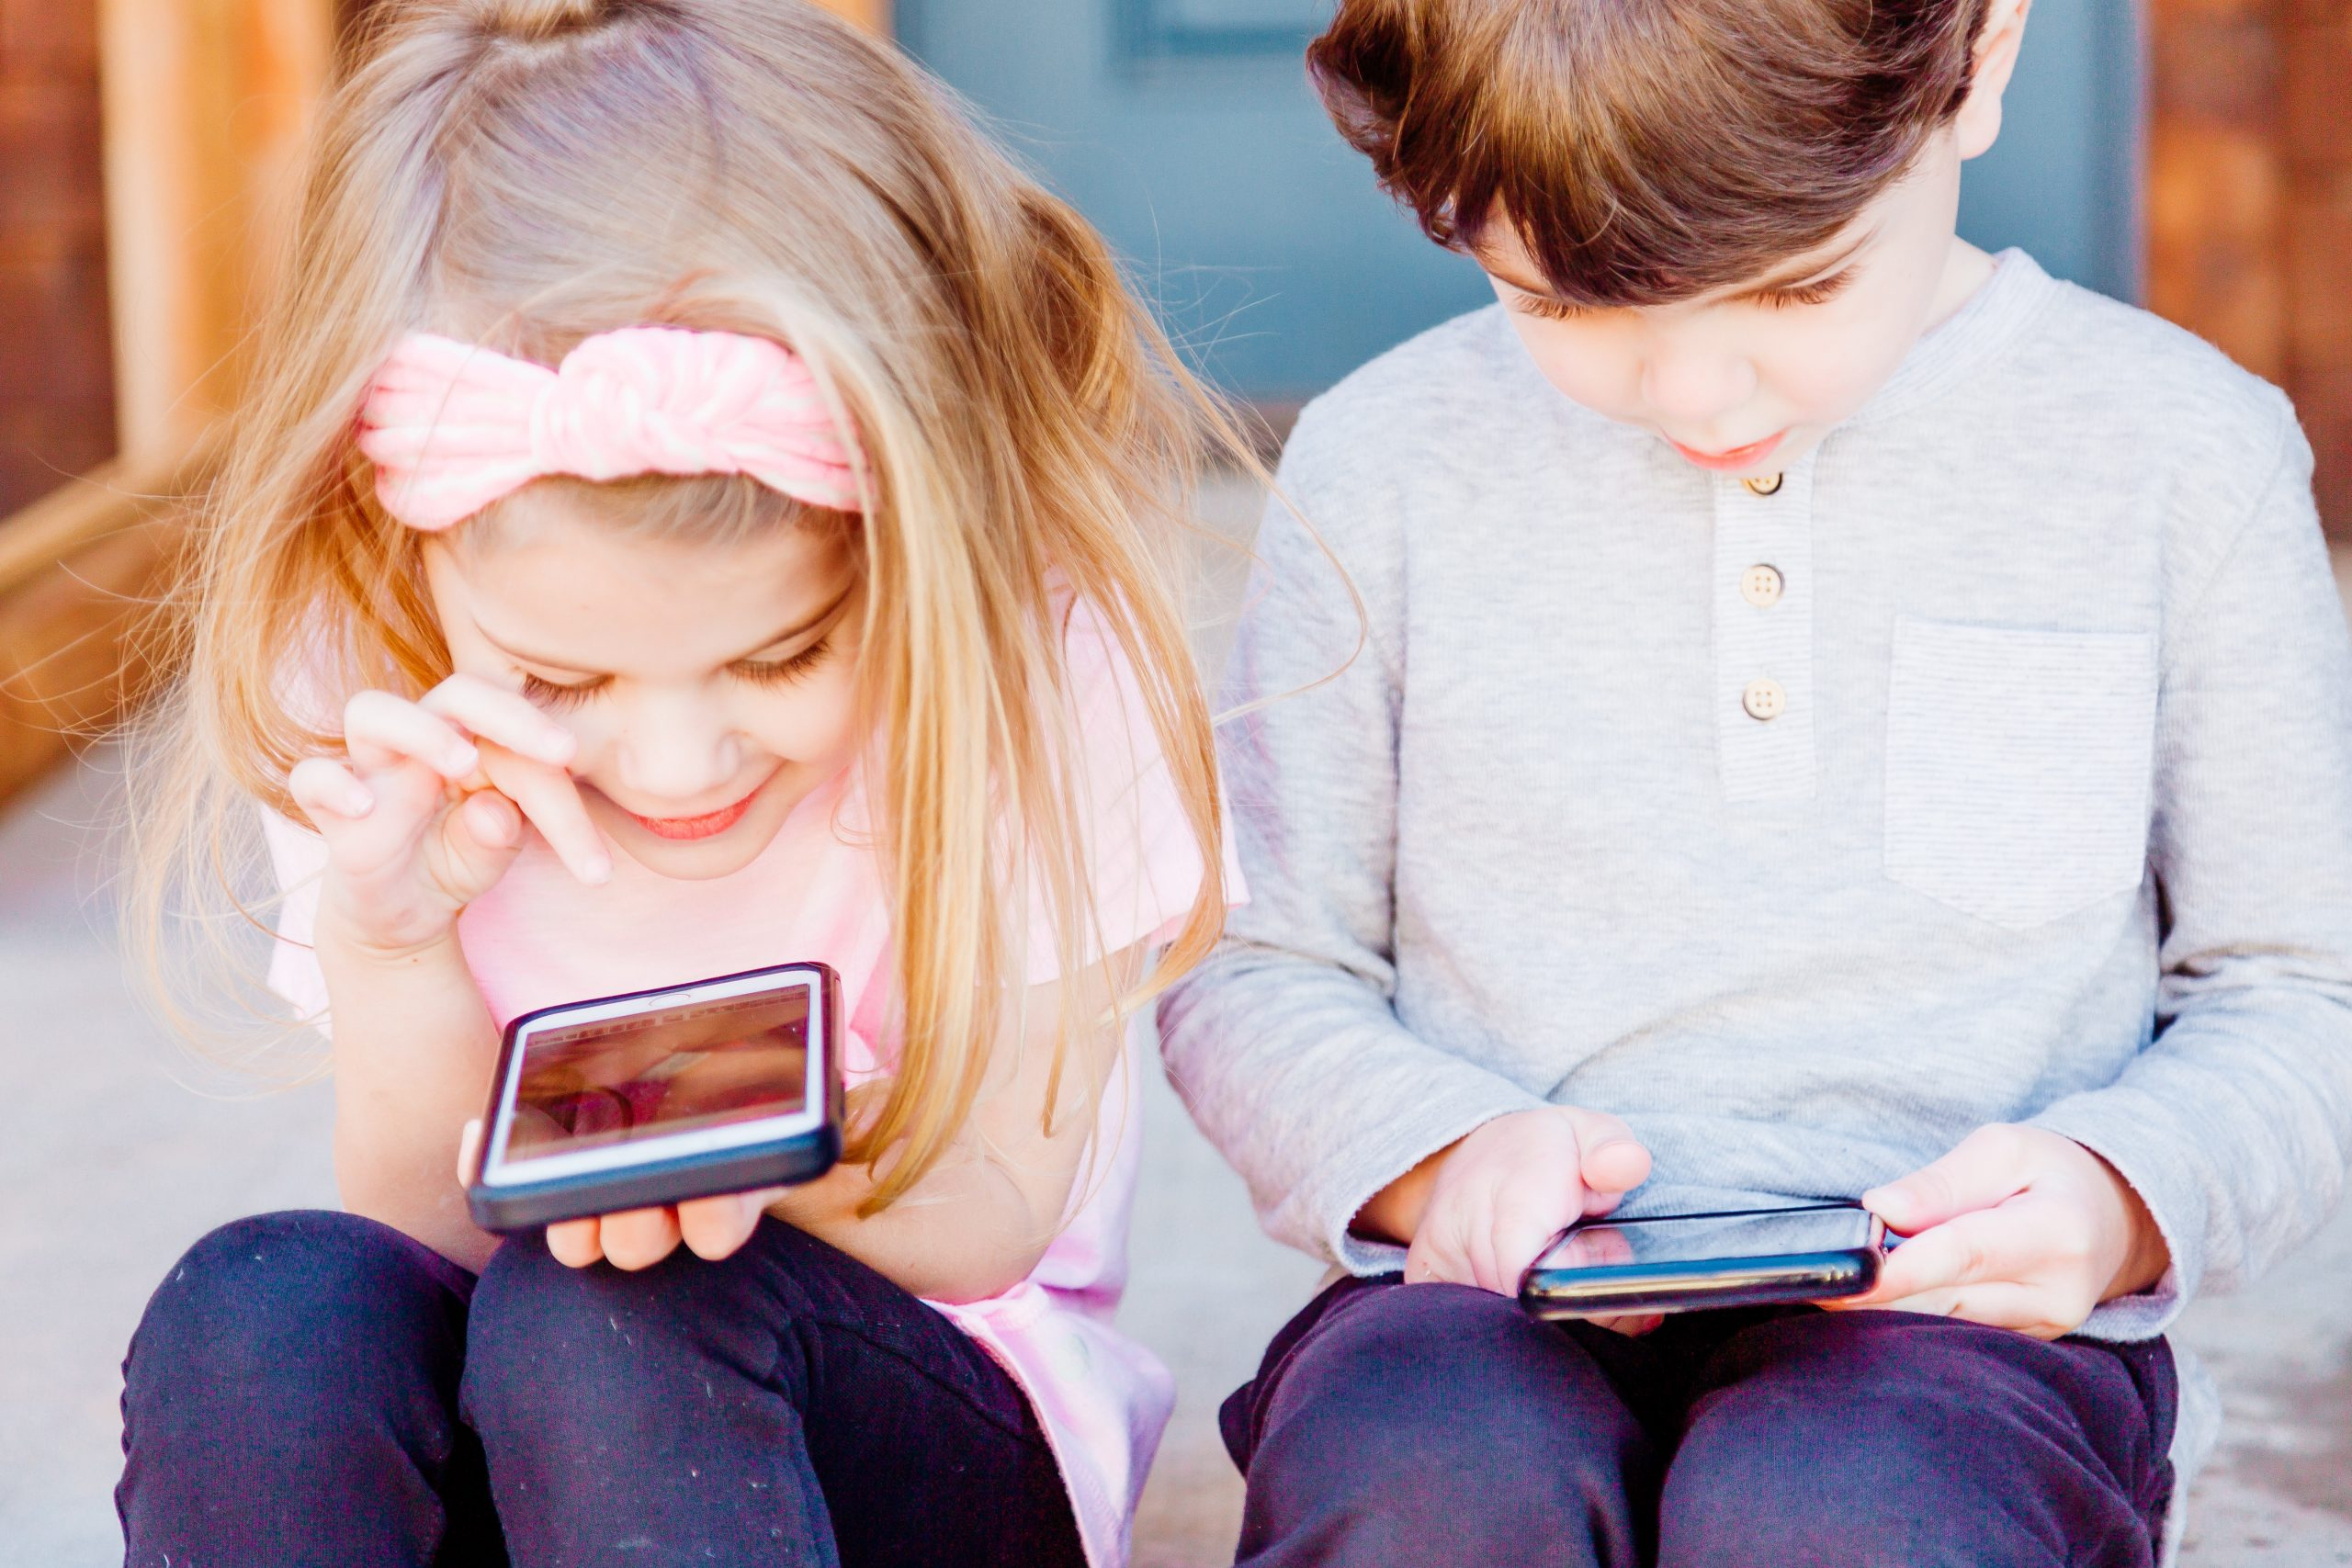 two children use mobile devices